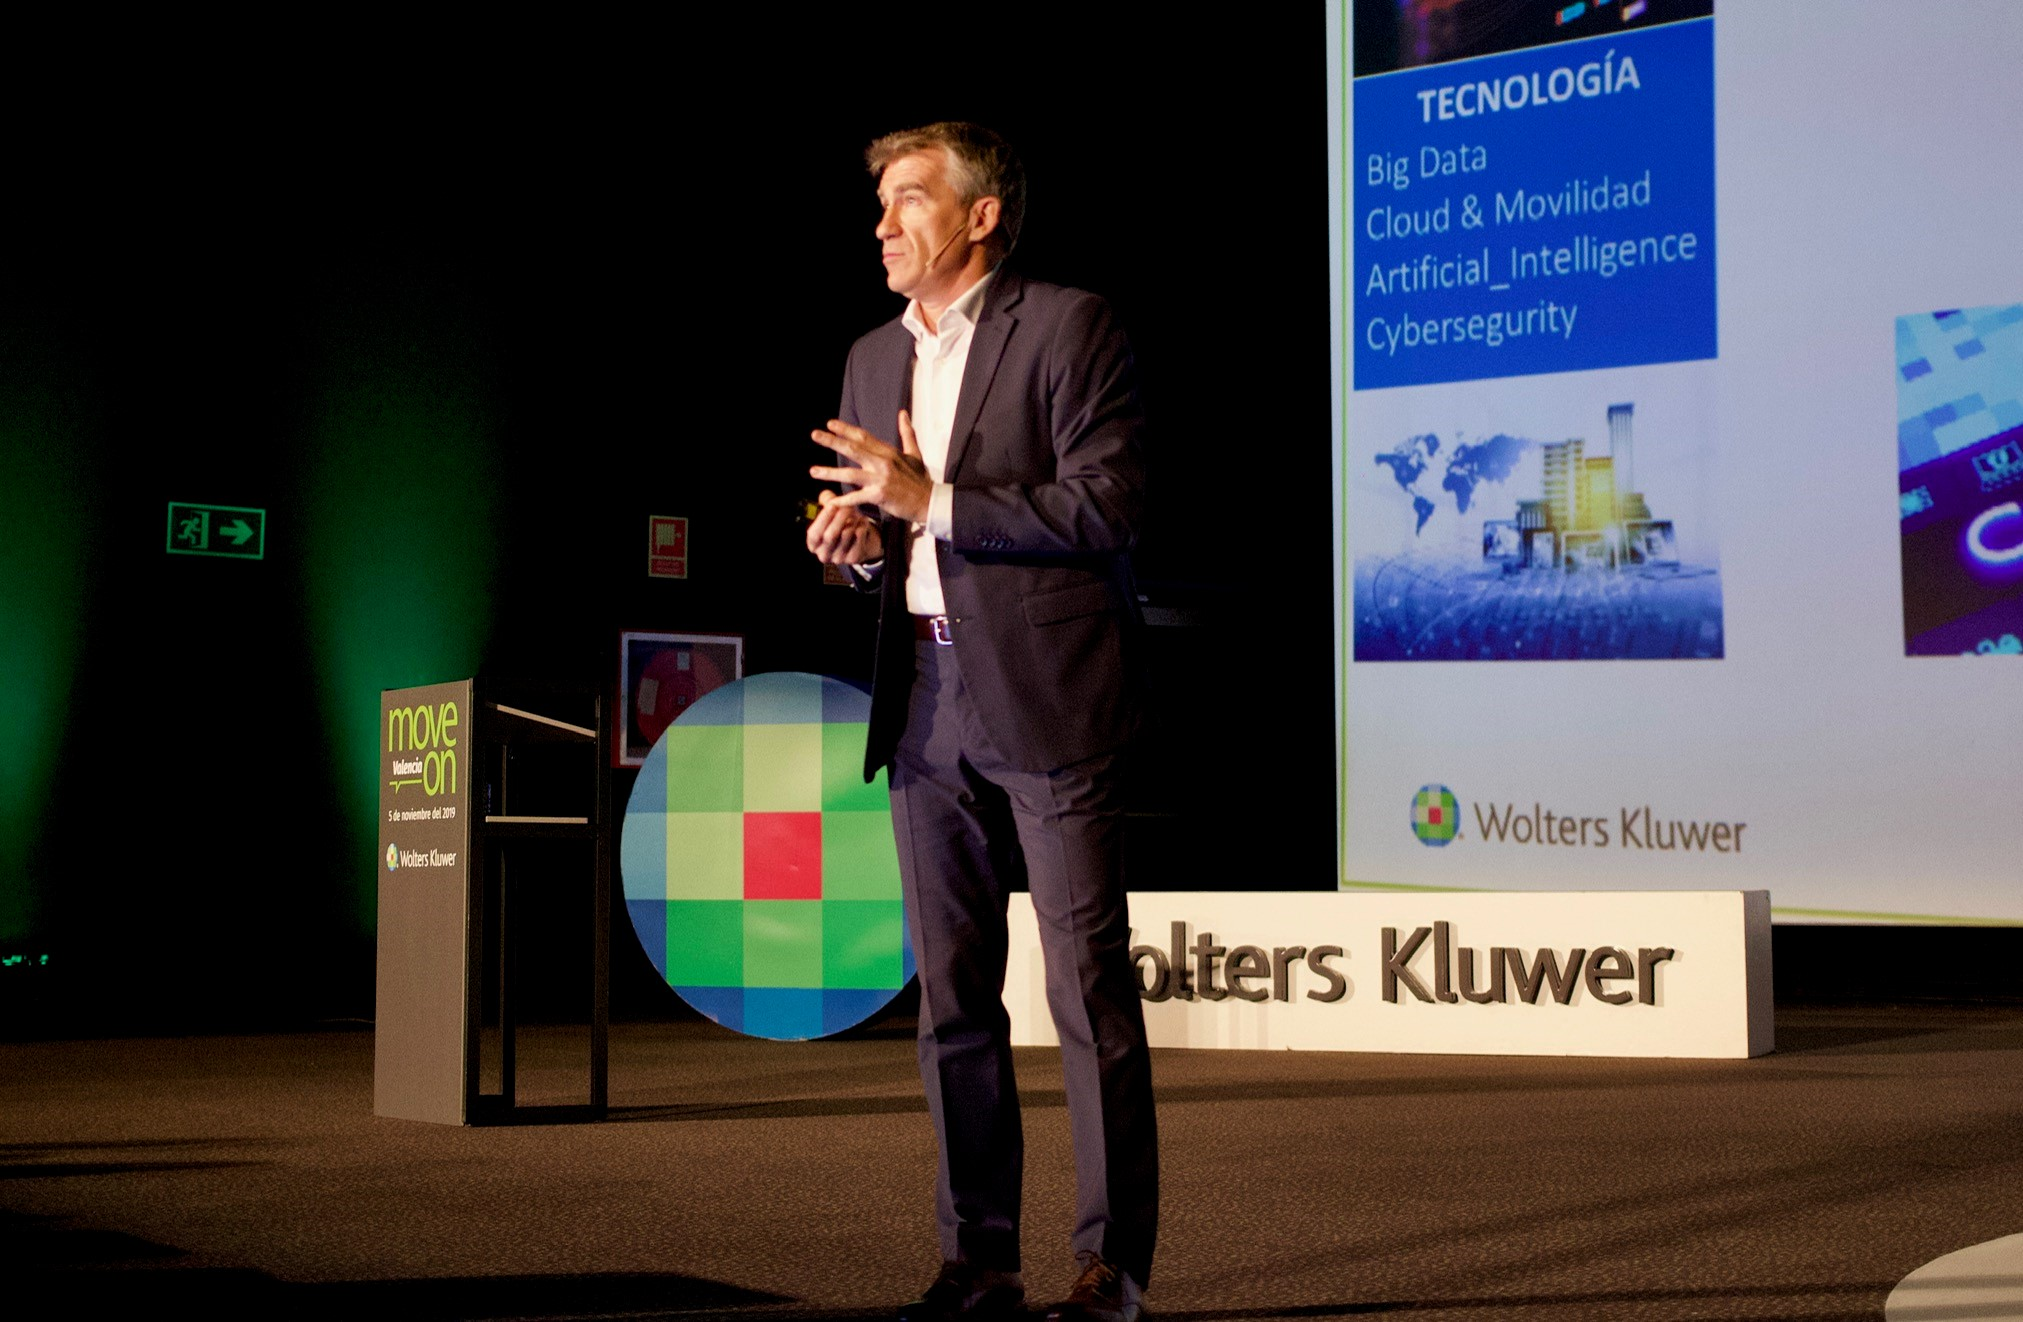 Wolters Kluwer impulsa la transformación empresarial de pymes y despachos en el evento Move On Valencia